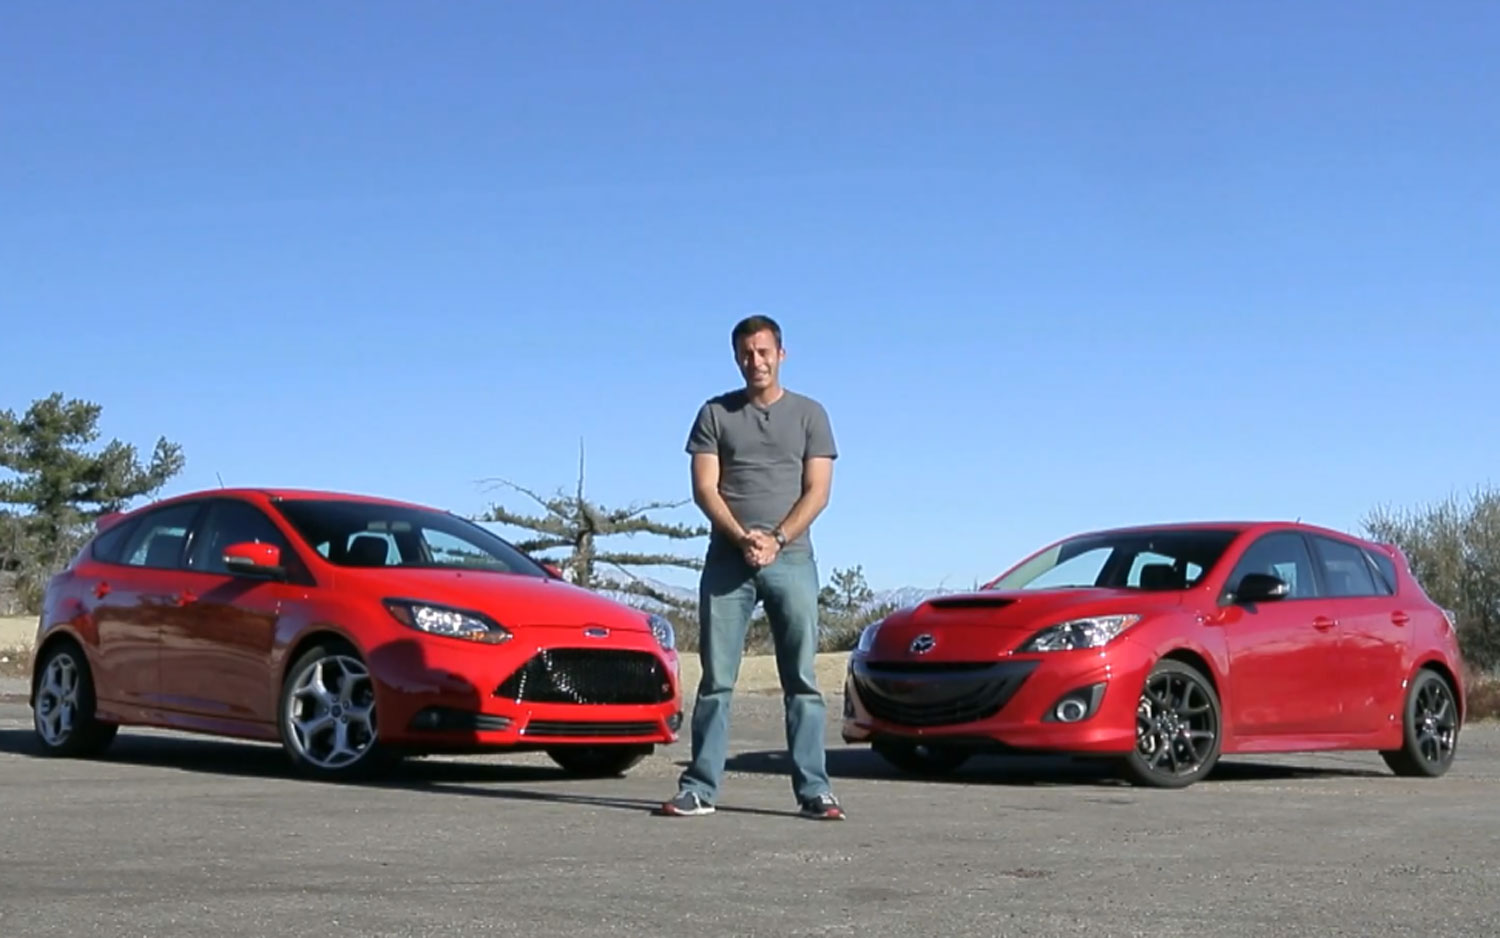 Carlos Lago With 2013 Mazdaspeed3 And 2013 Ford Focus ST1